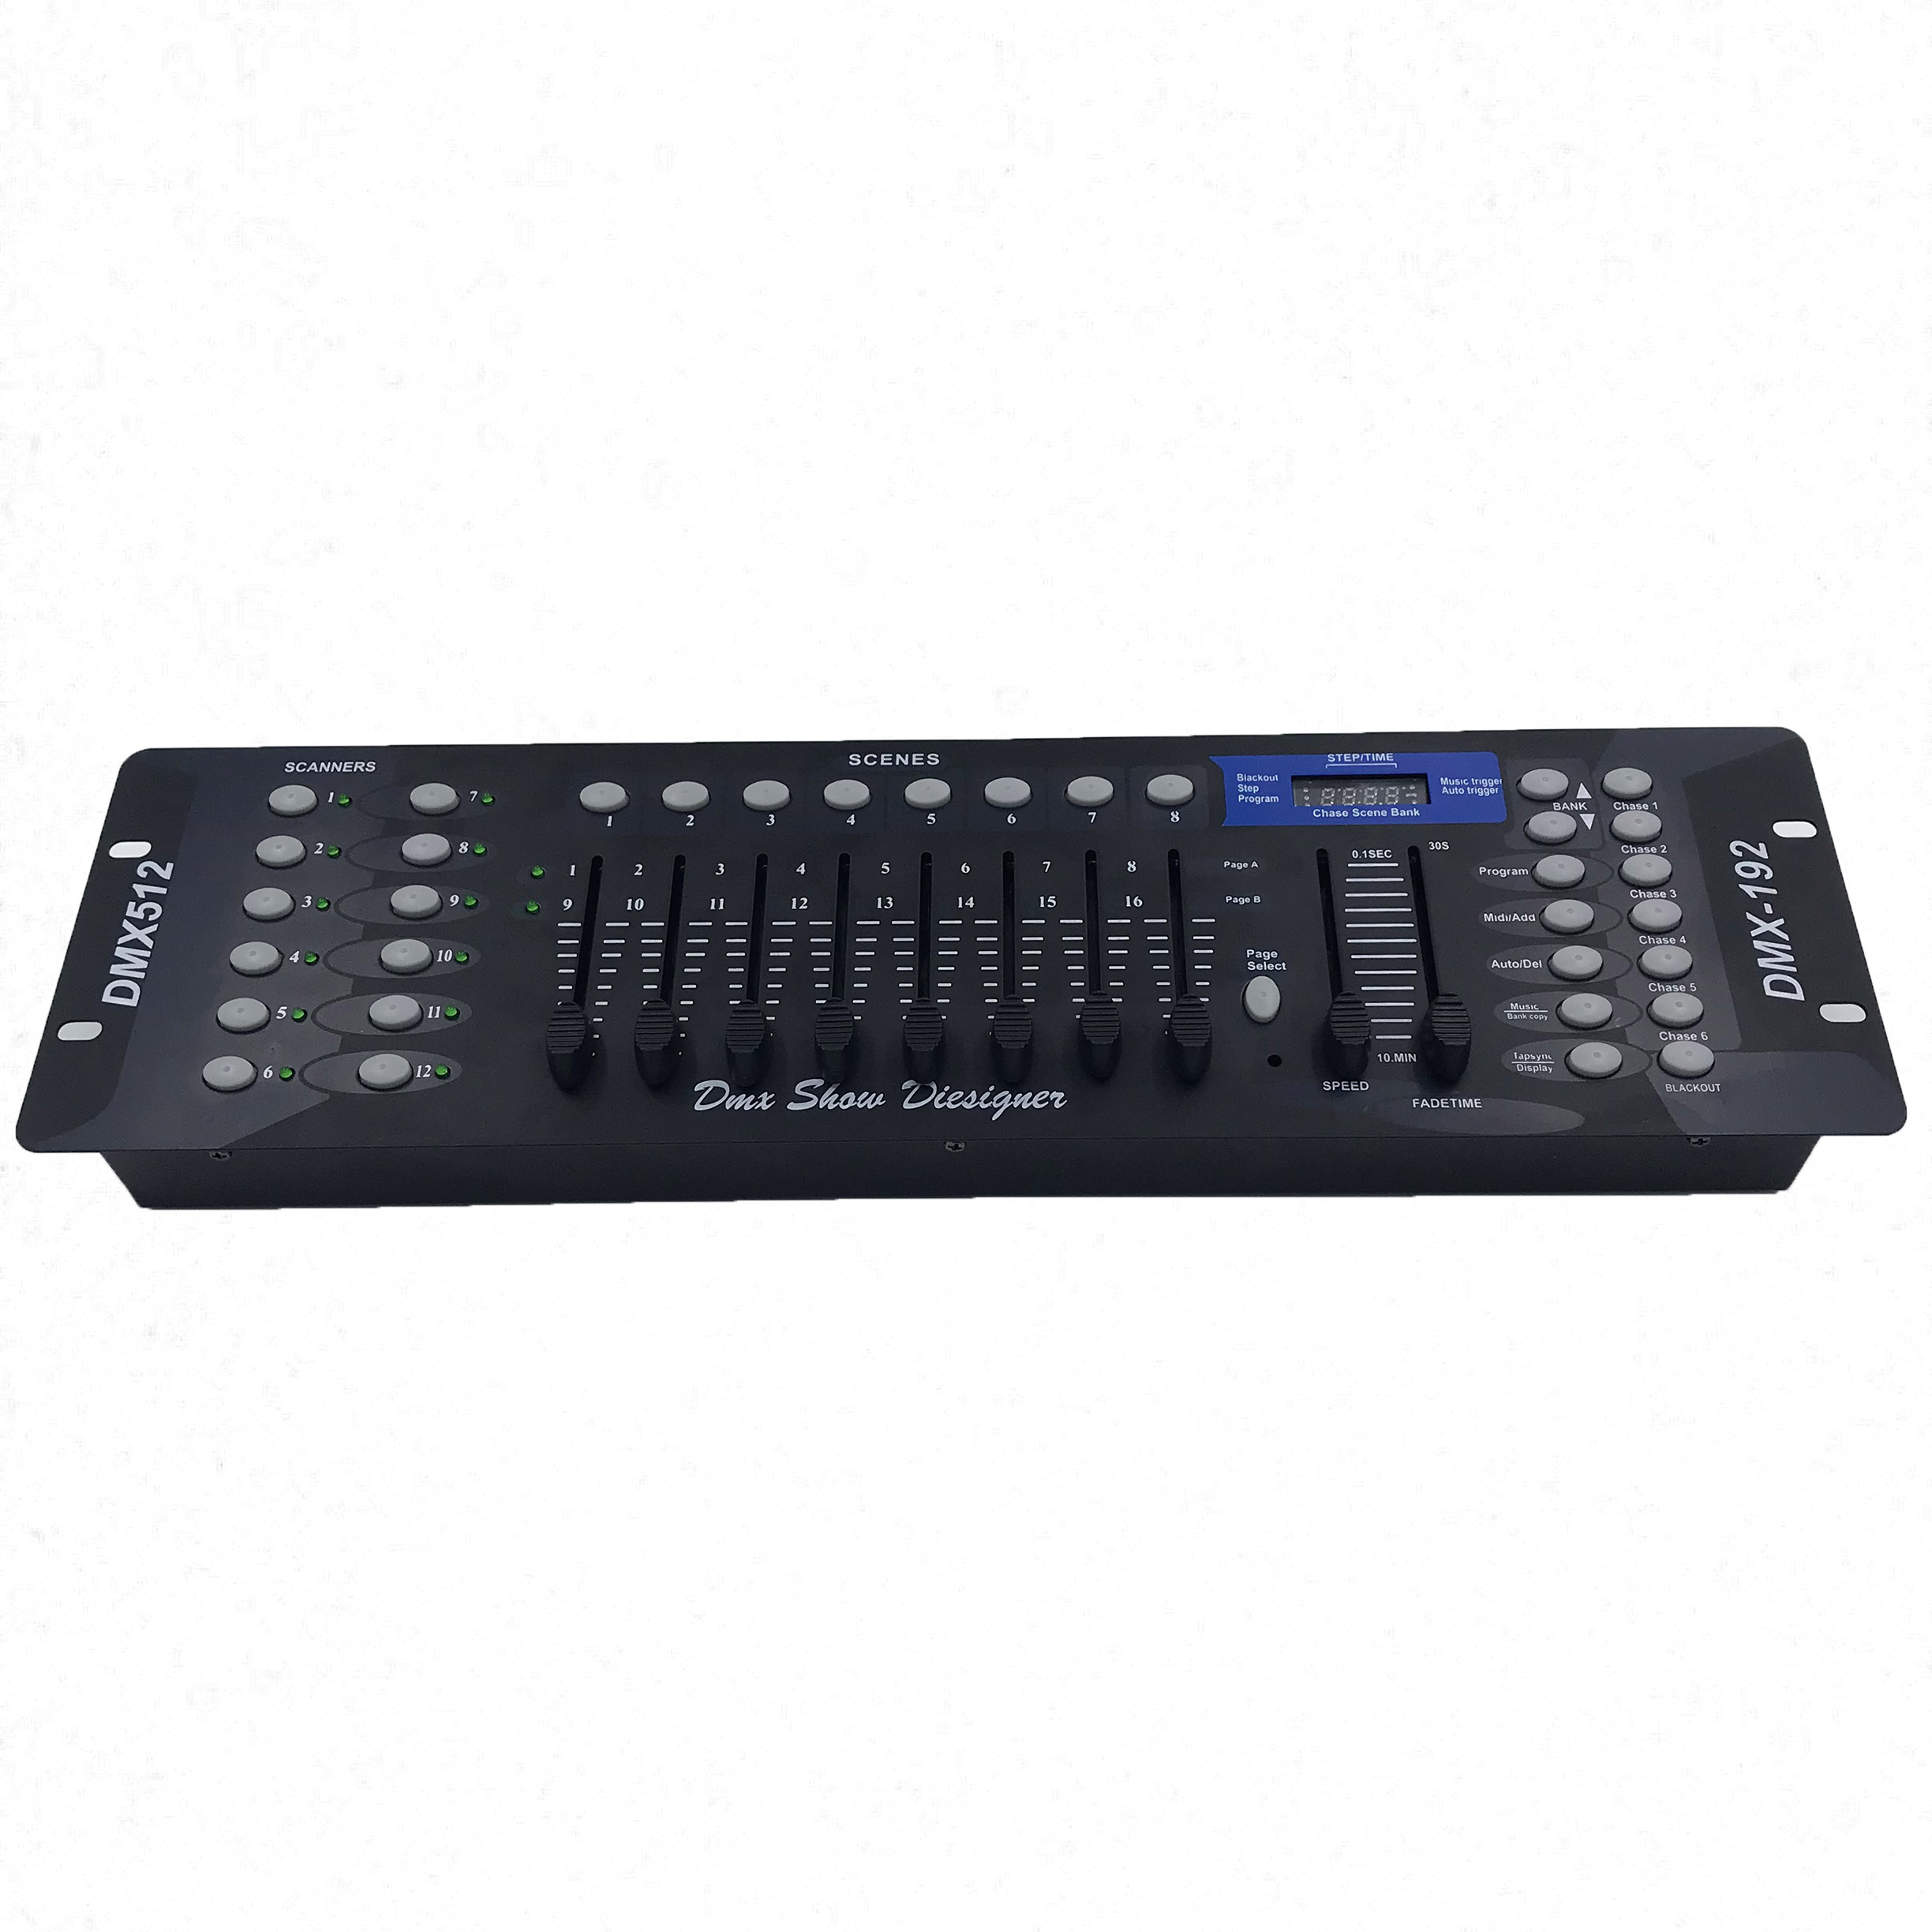 Free Shipping Rgb Controler 192 DMX Controller DJ Equipment DMX 512 Console Stage Lighting